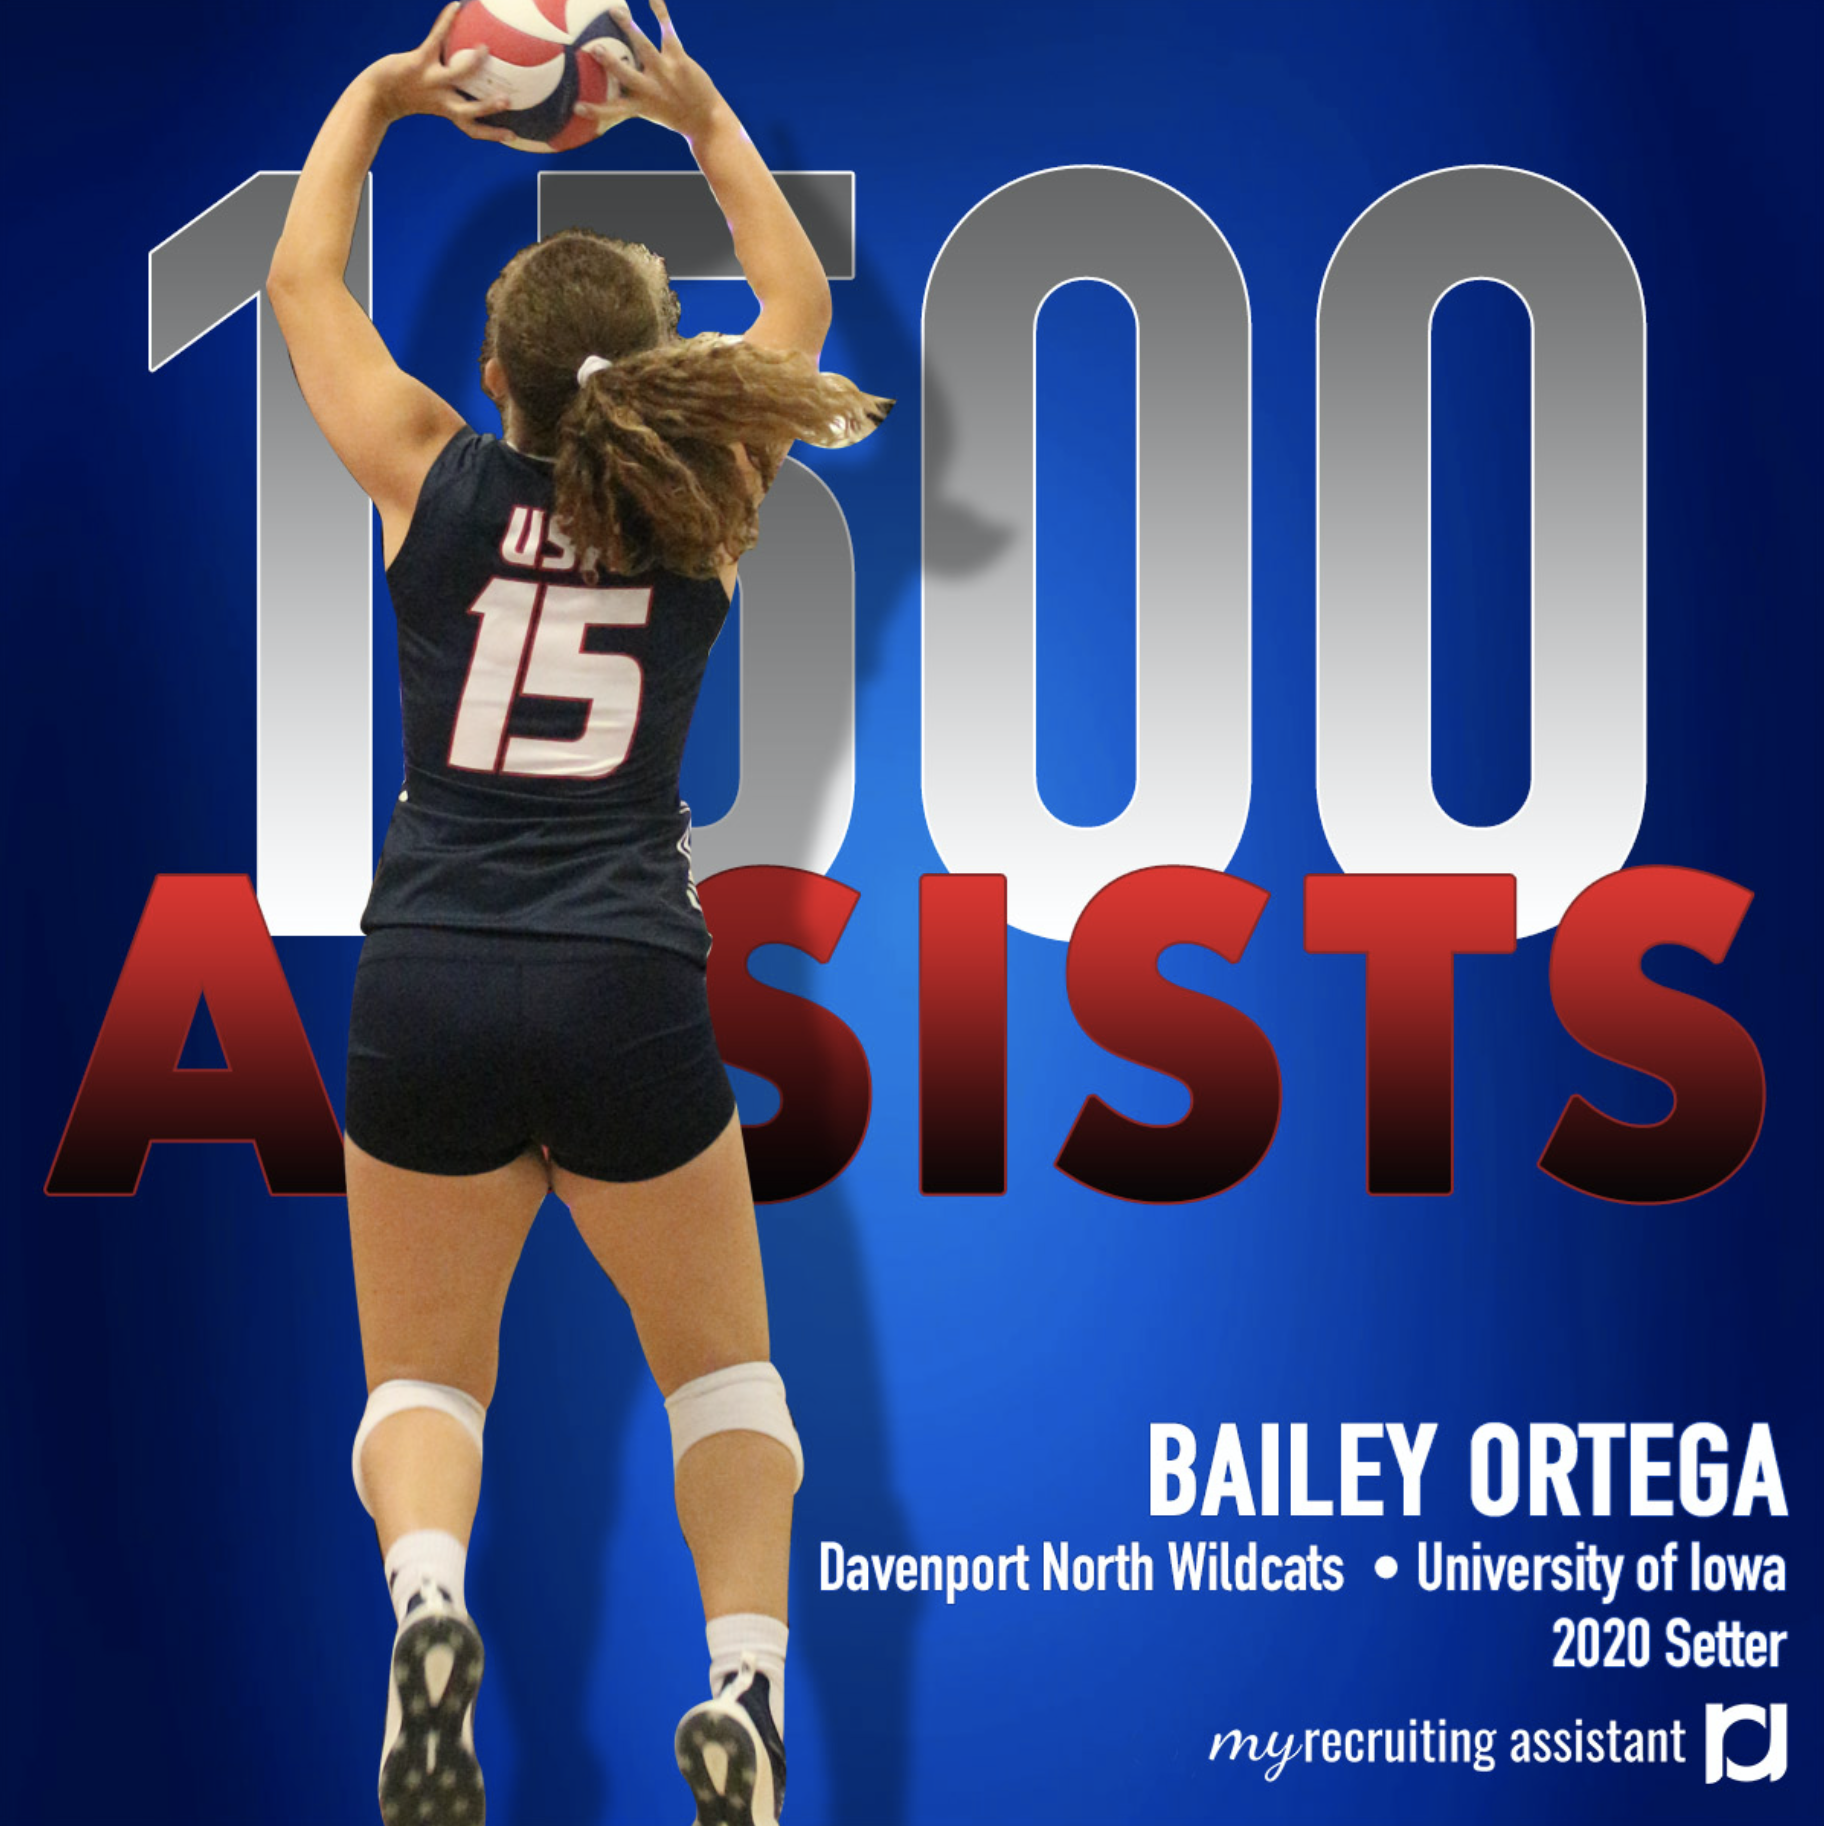 Bailey Ortega Class Of 2020 Setter Committed To The University Of Iowa The University Of Iowa Recruitment Class Of 2020